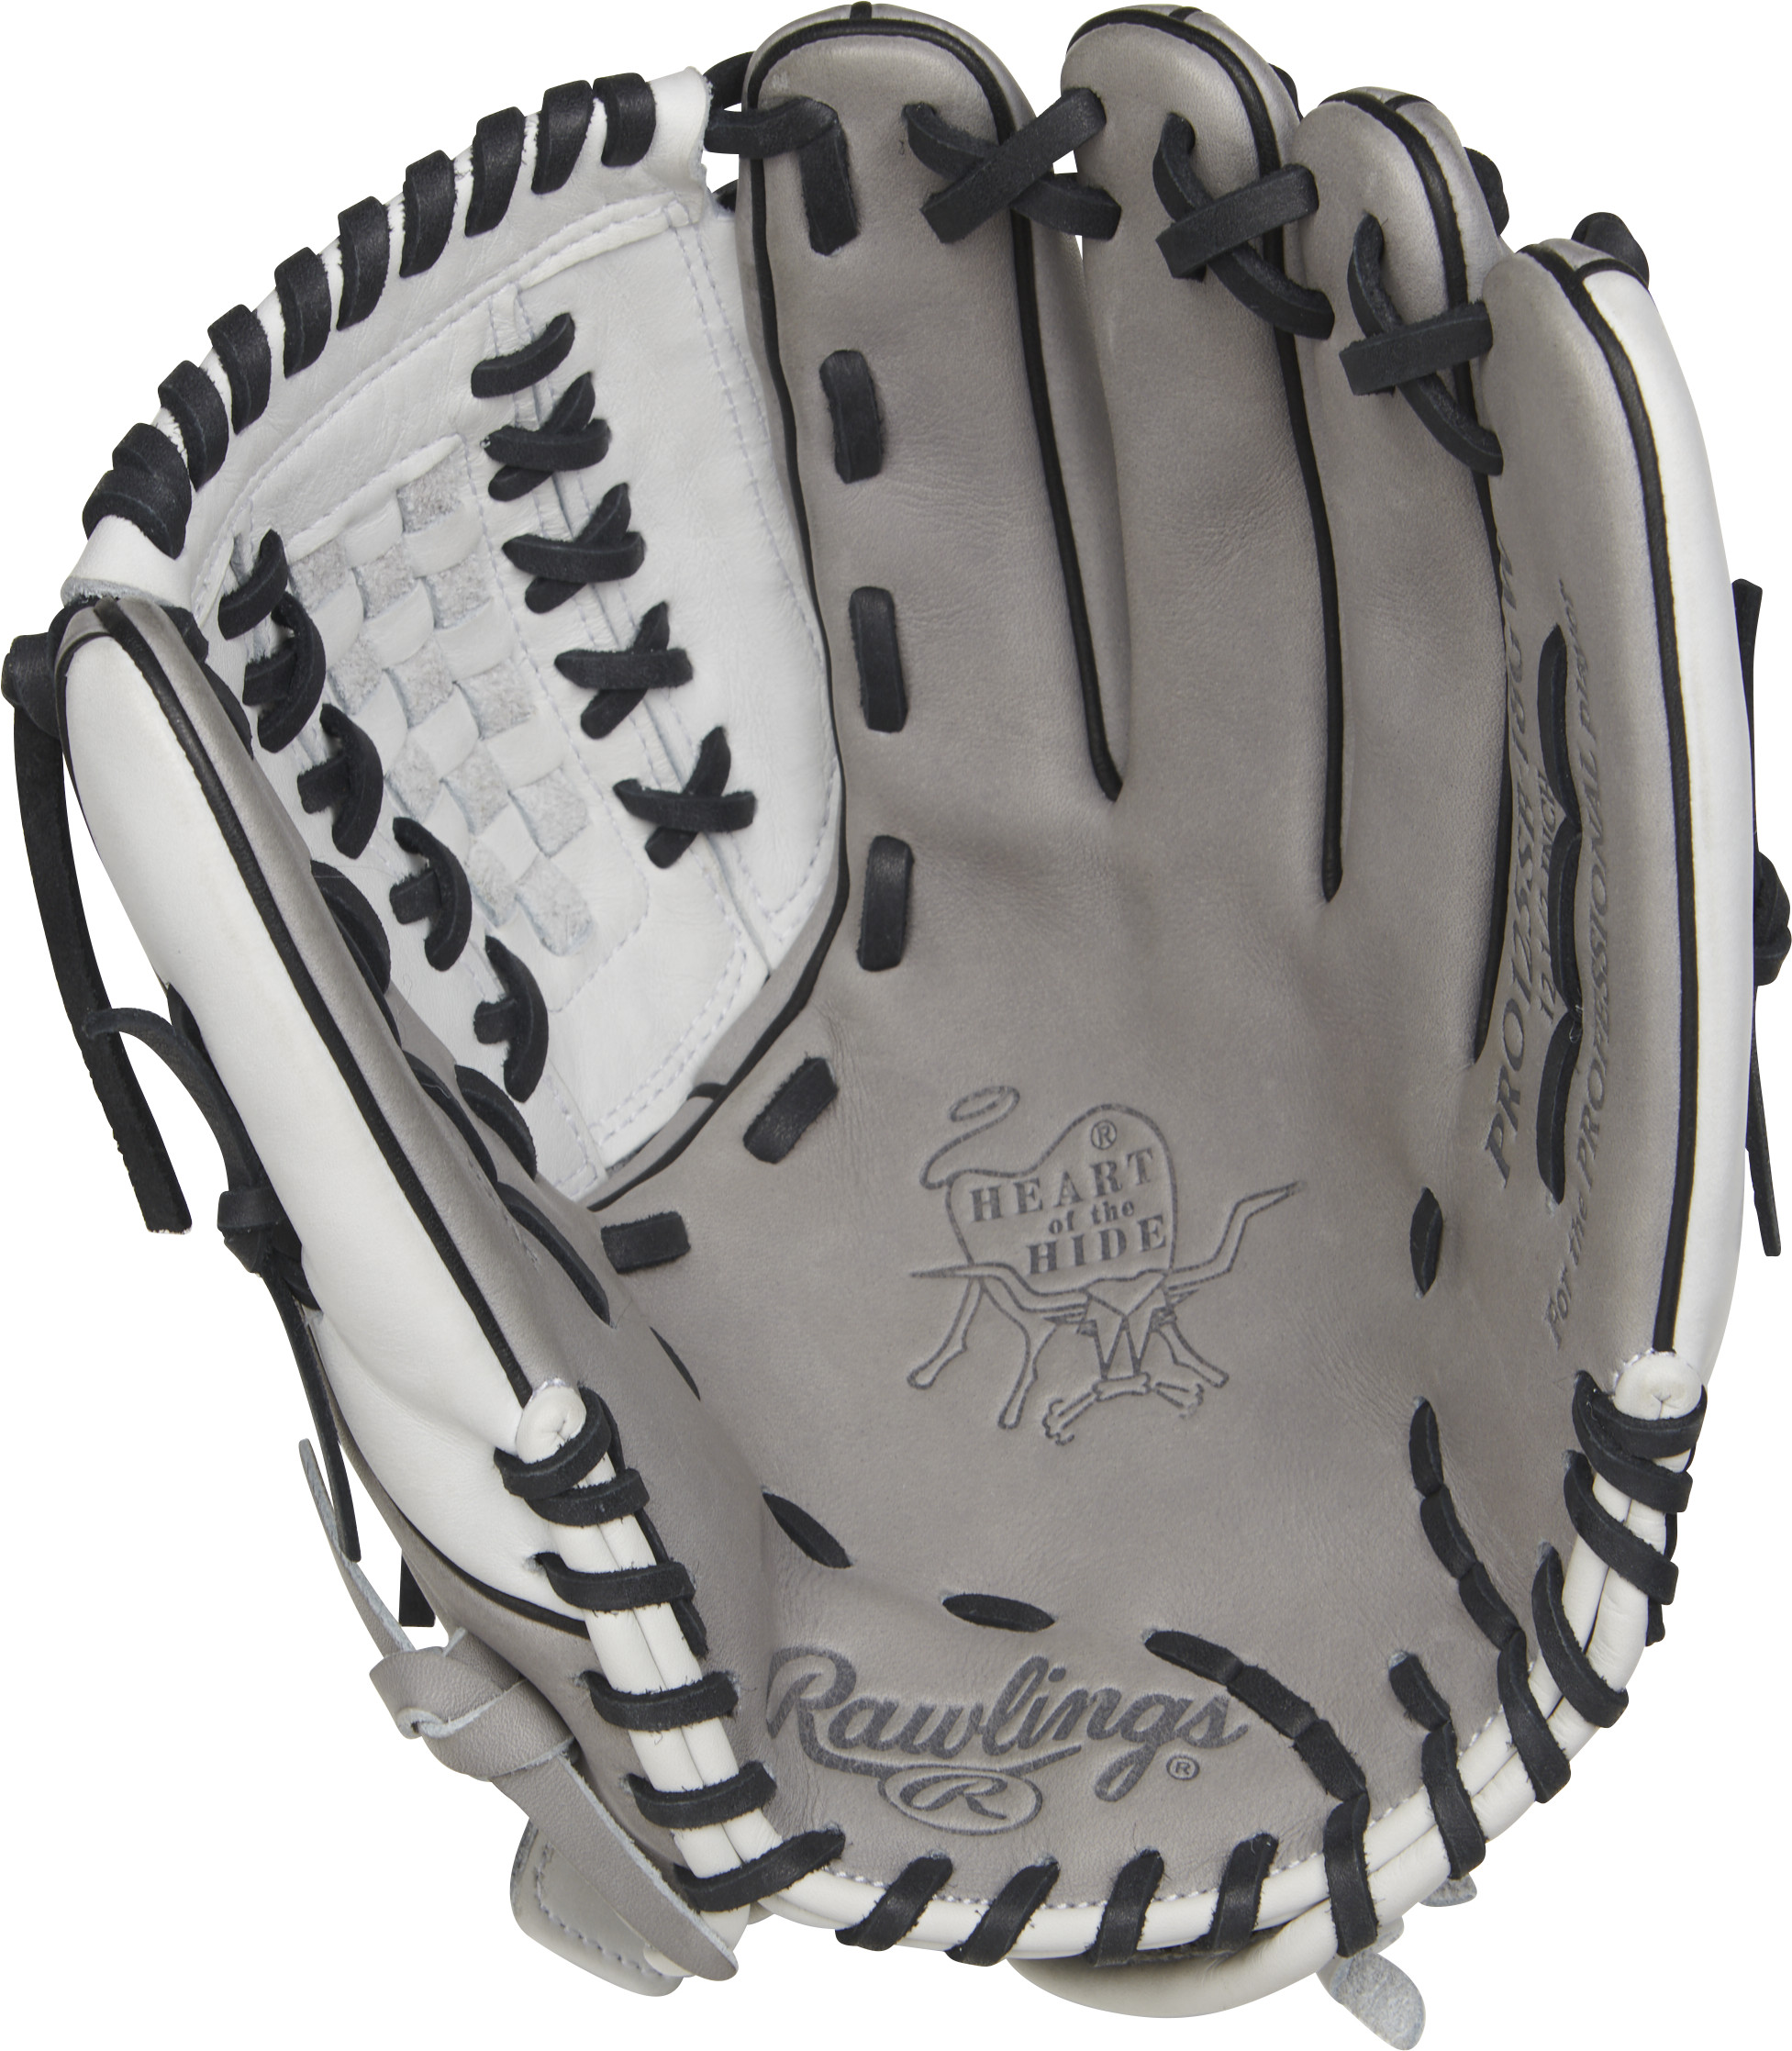 http://www.bestbatdeals.com/images/gloves/rawlings/PRO125SB-18GW-1.jpg